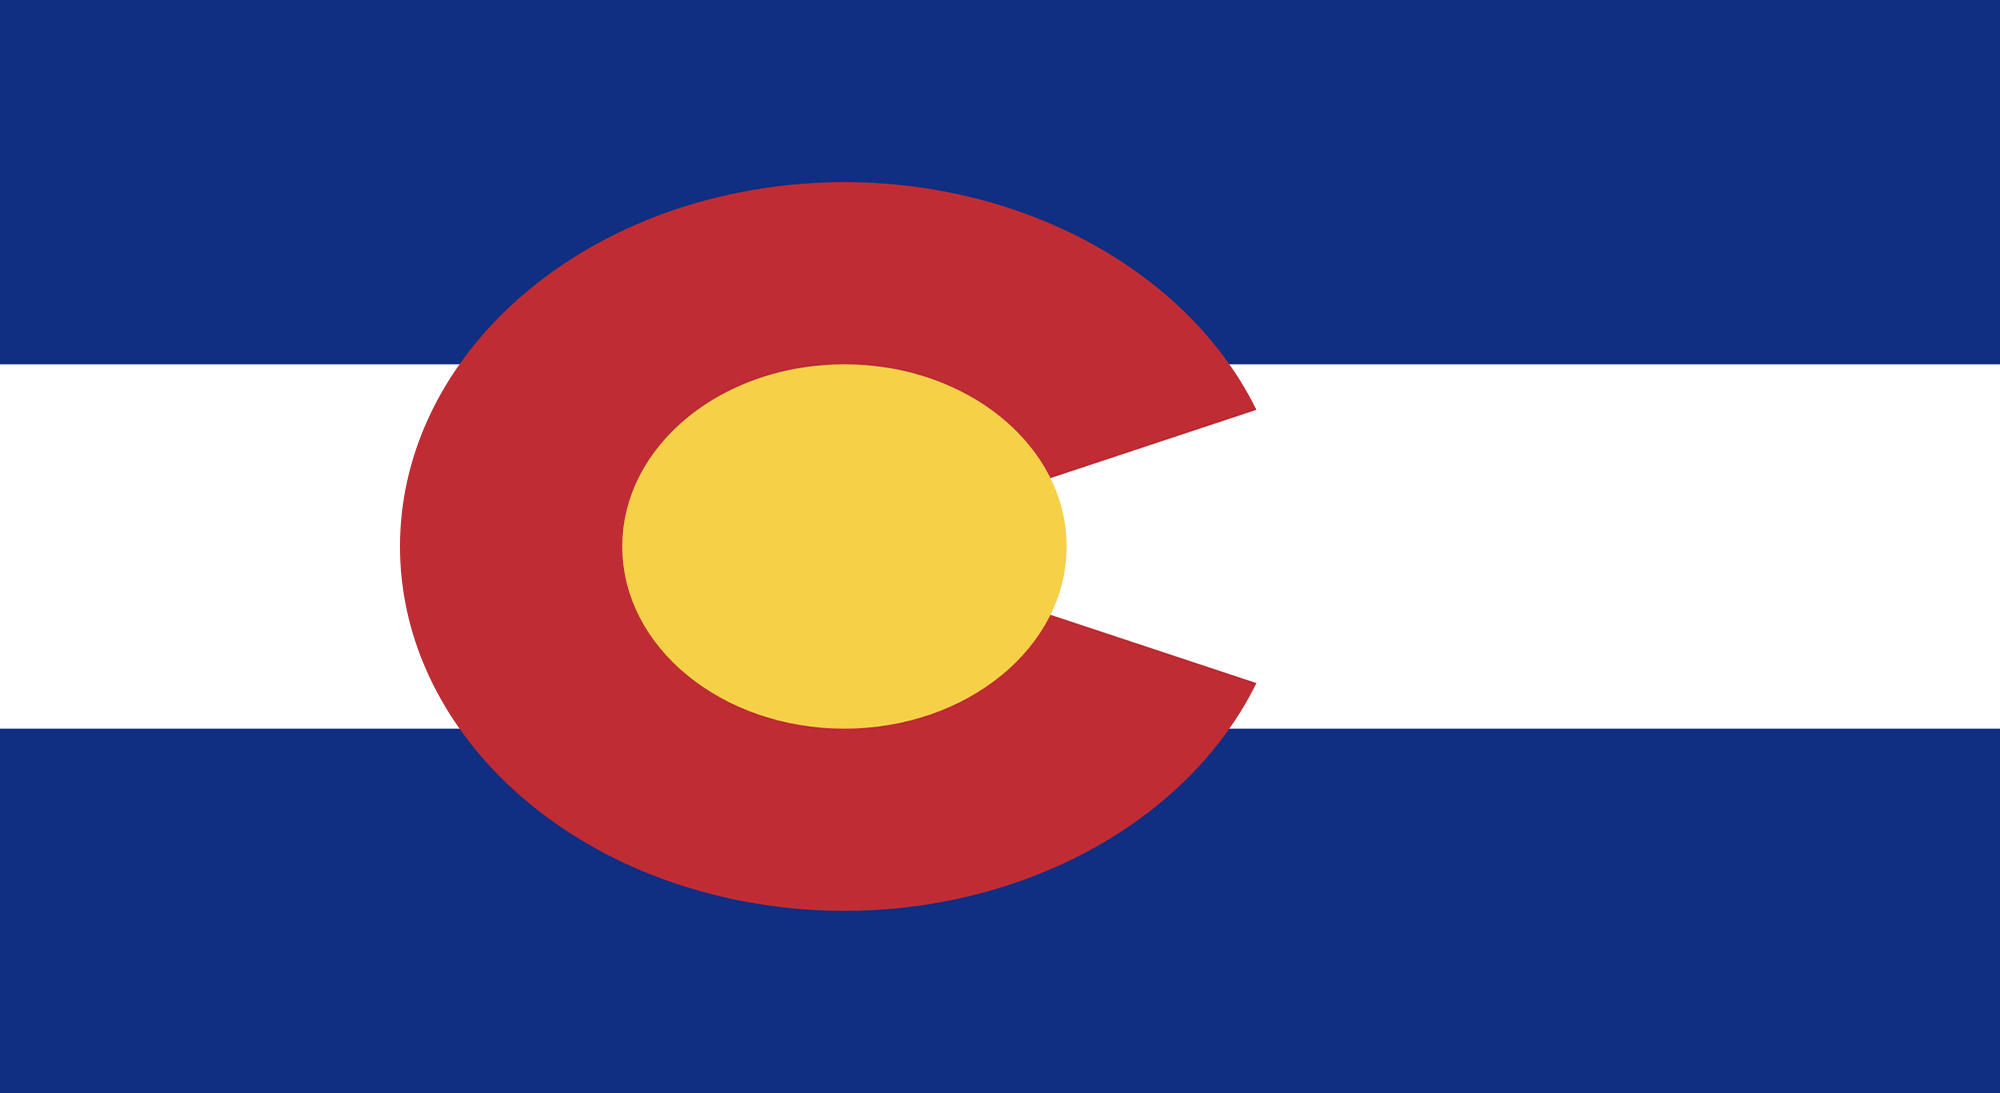 Image of the Colorado flag